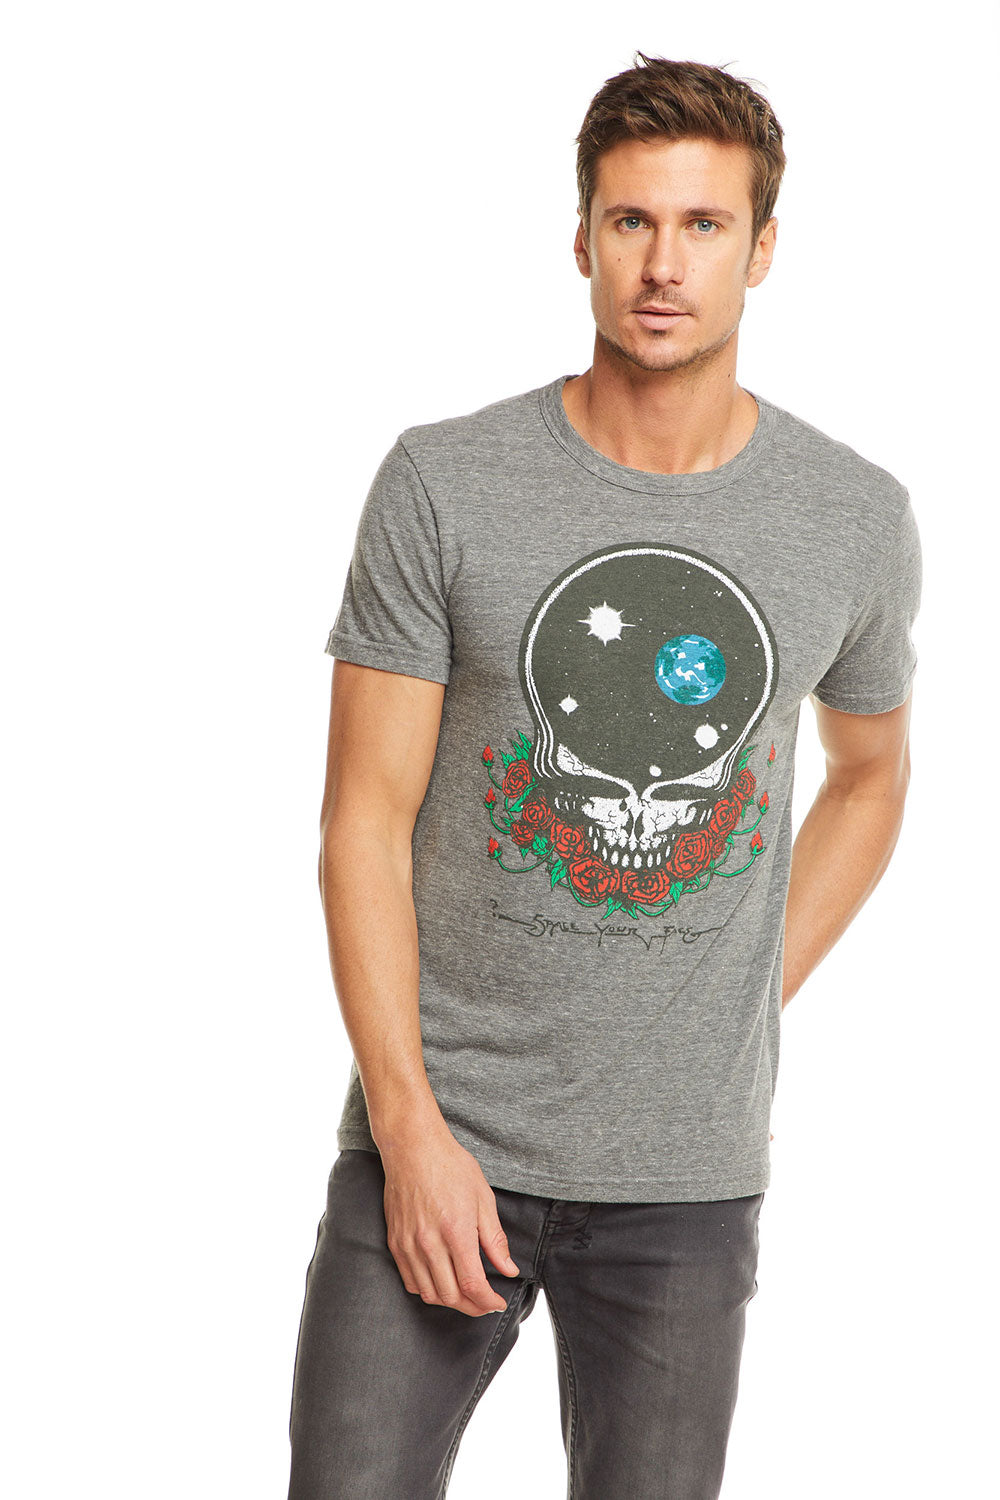 ca91bad3 Grateful Dead - Space Your Face, MENS, chaserbrand.com,chaser clothing,